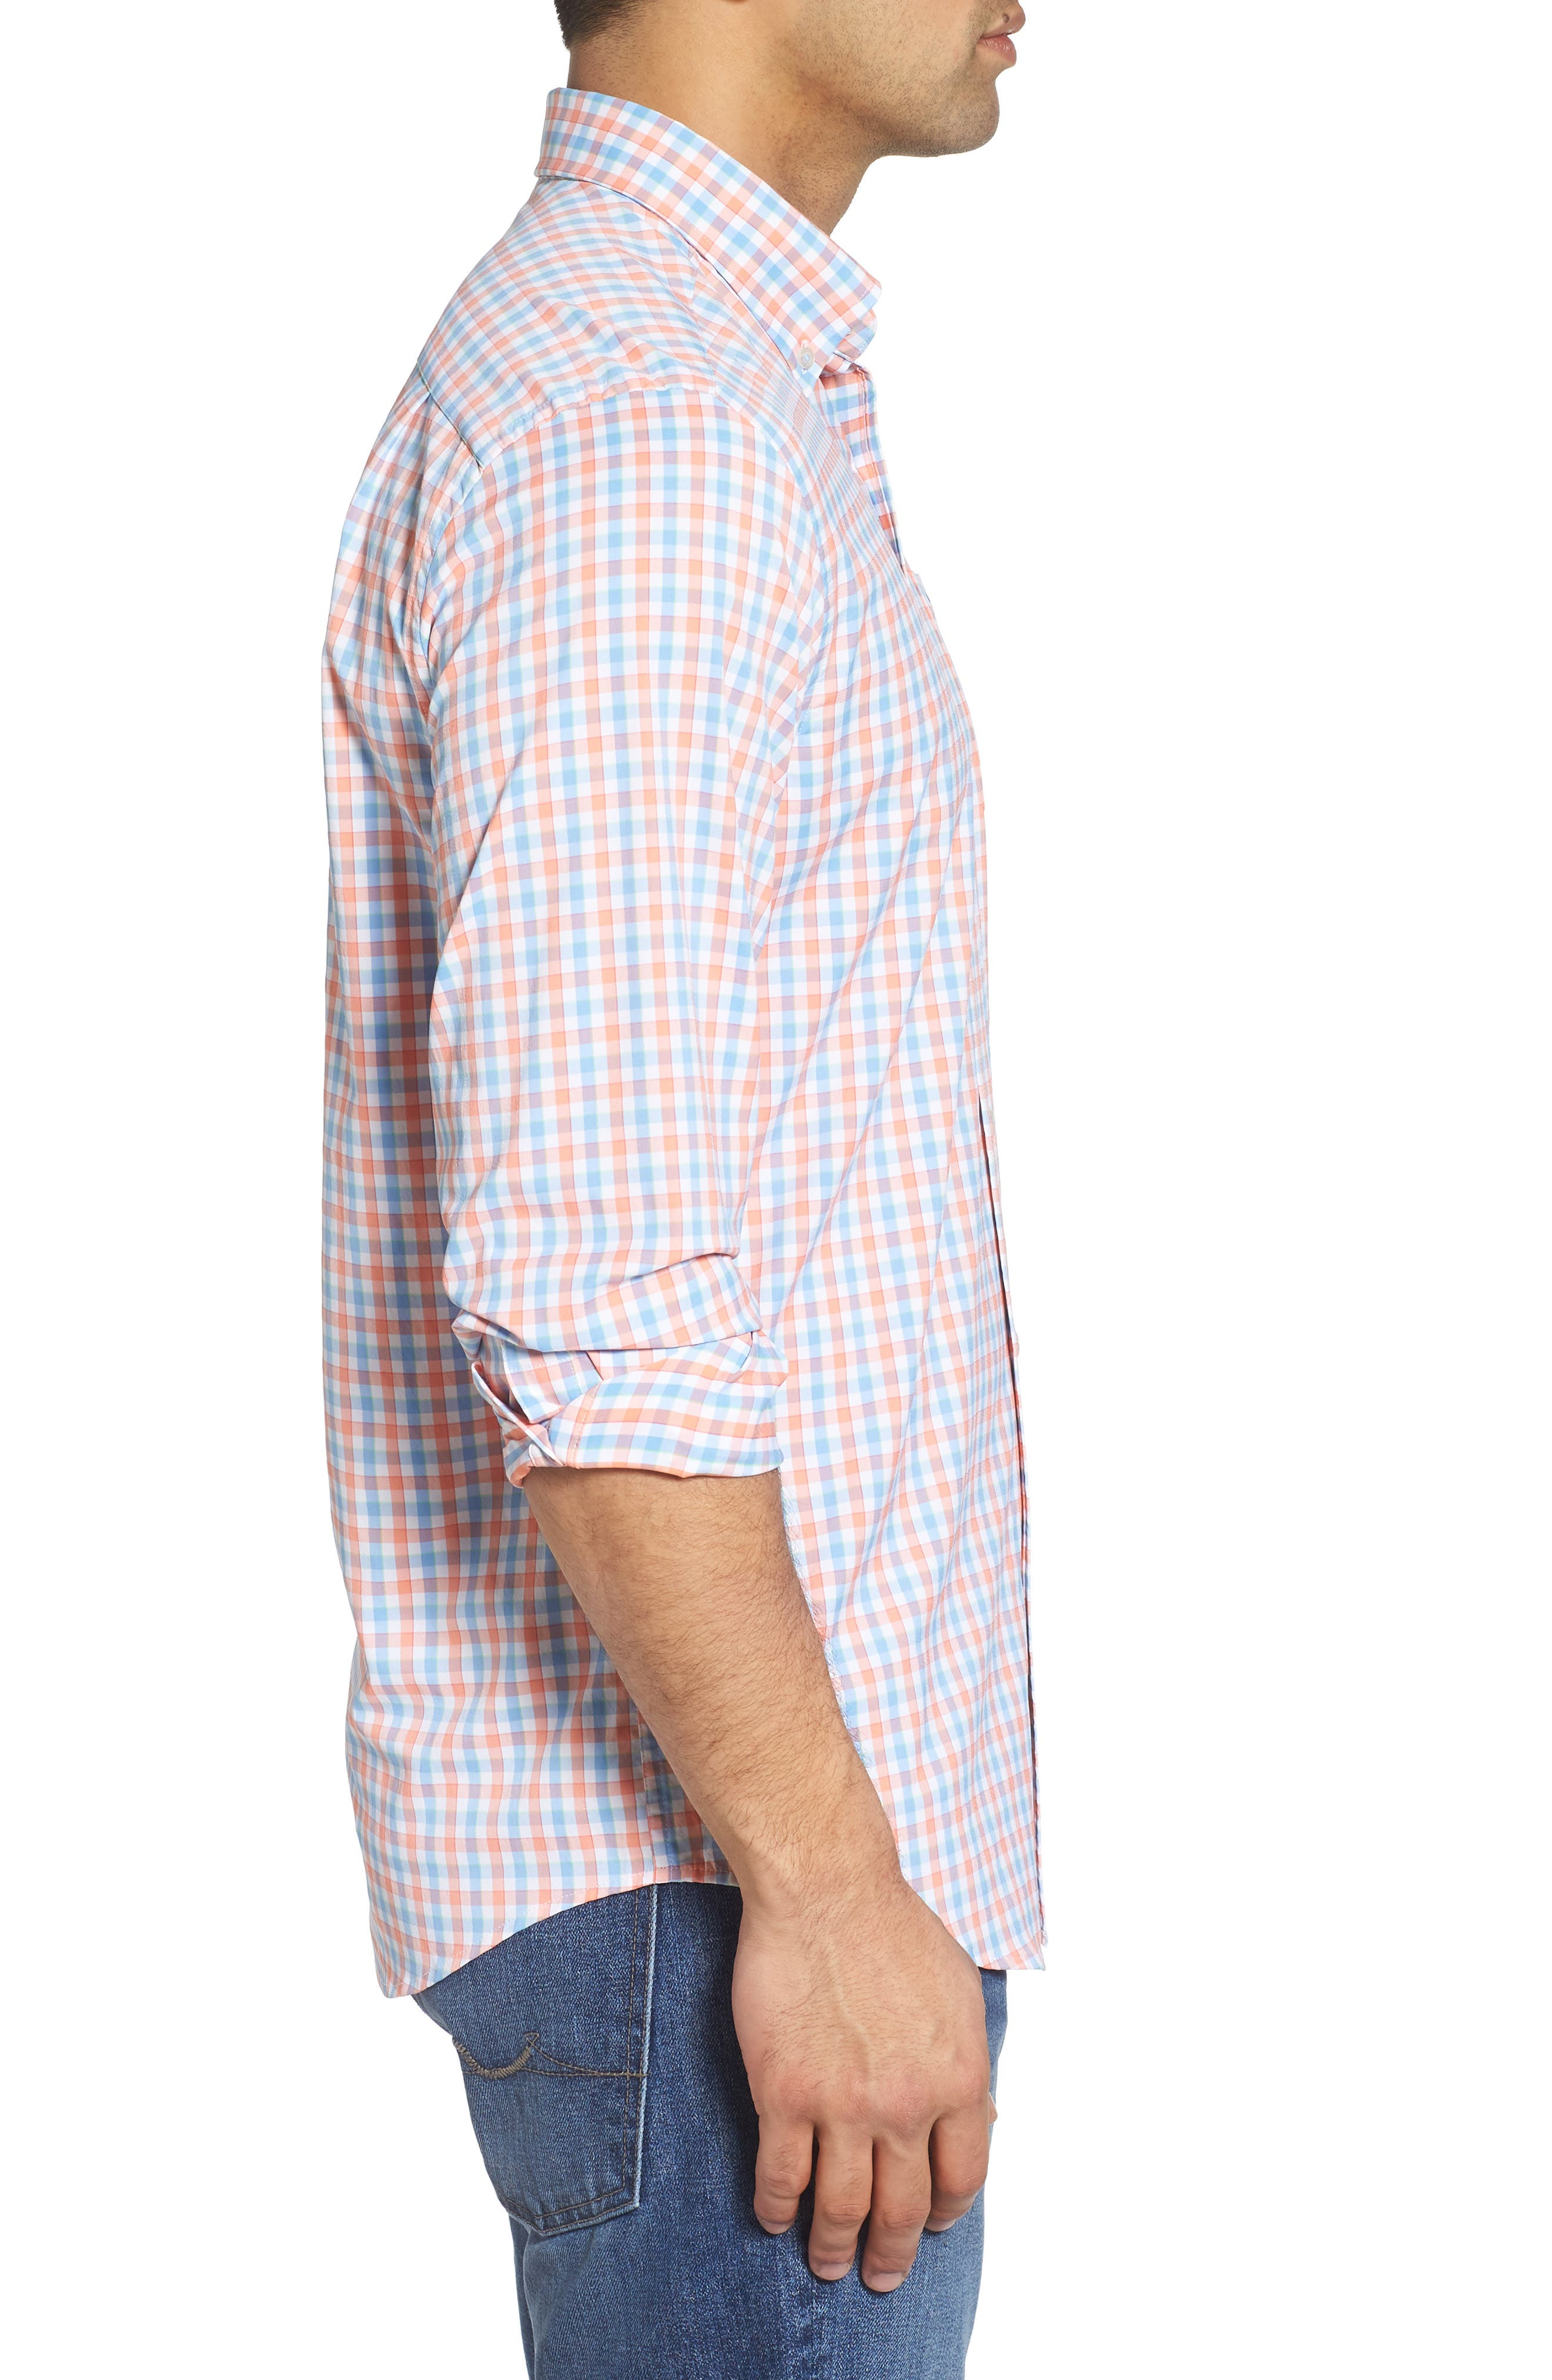 Market Square Regular Fit Stretch Check Sport Shirt,                             Alternate thumbnail 3, color,                             Nectar Coral